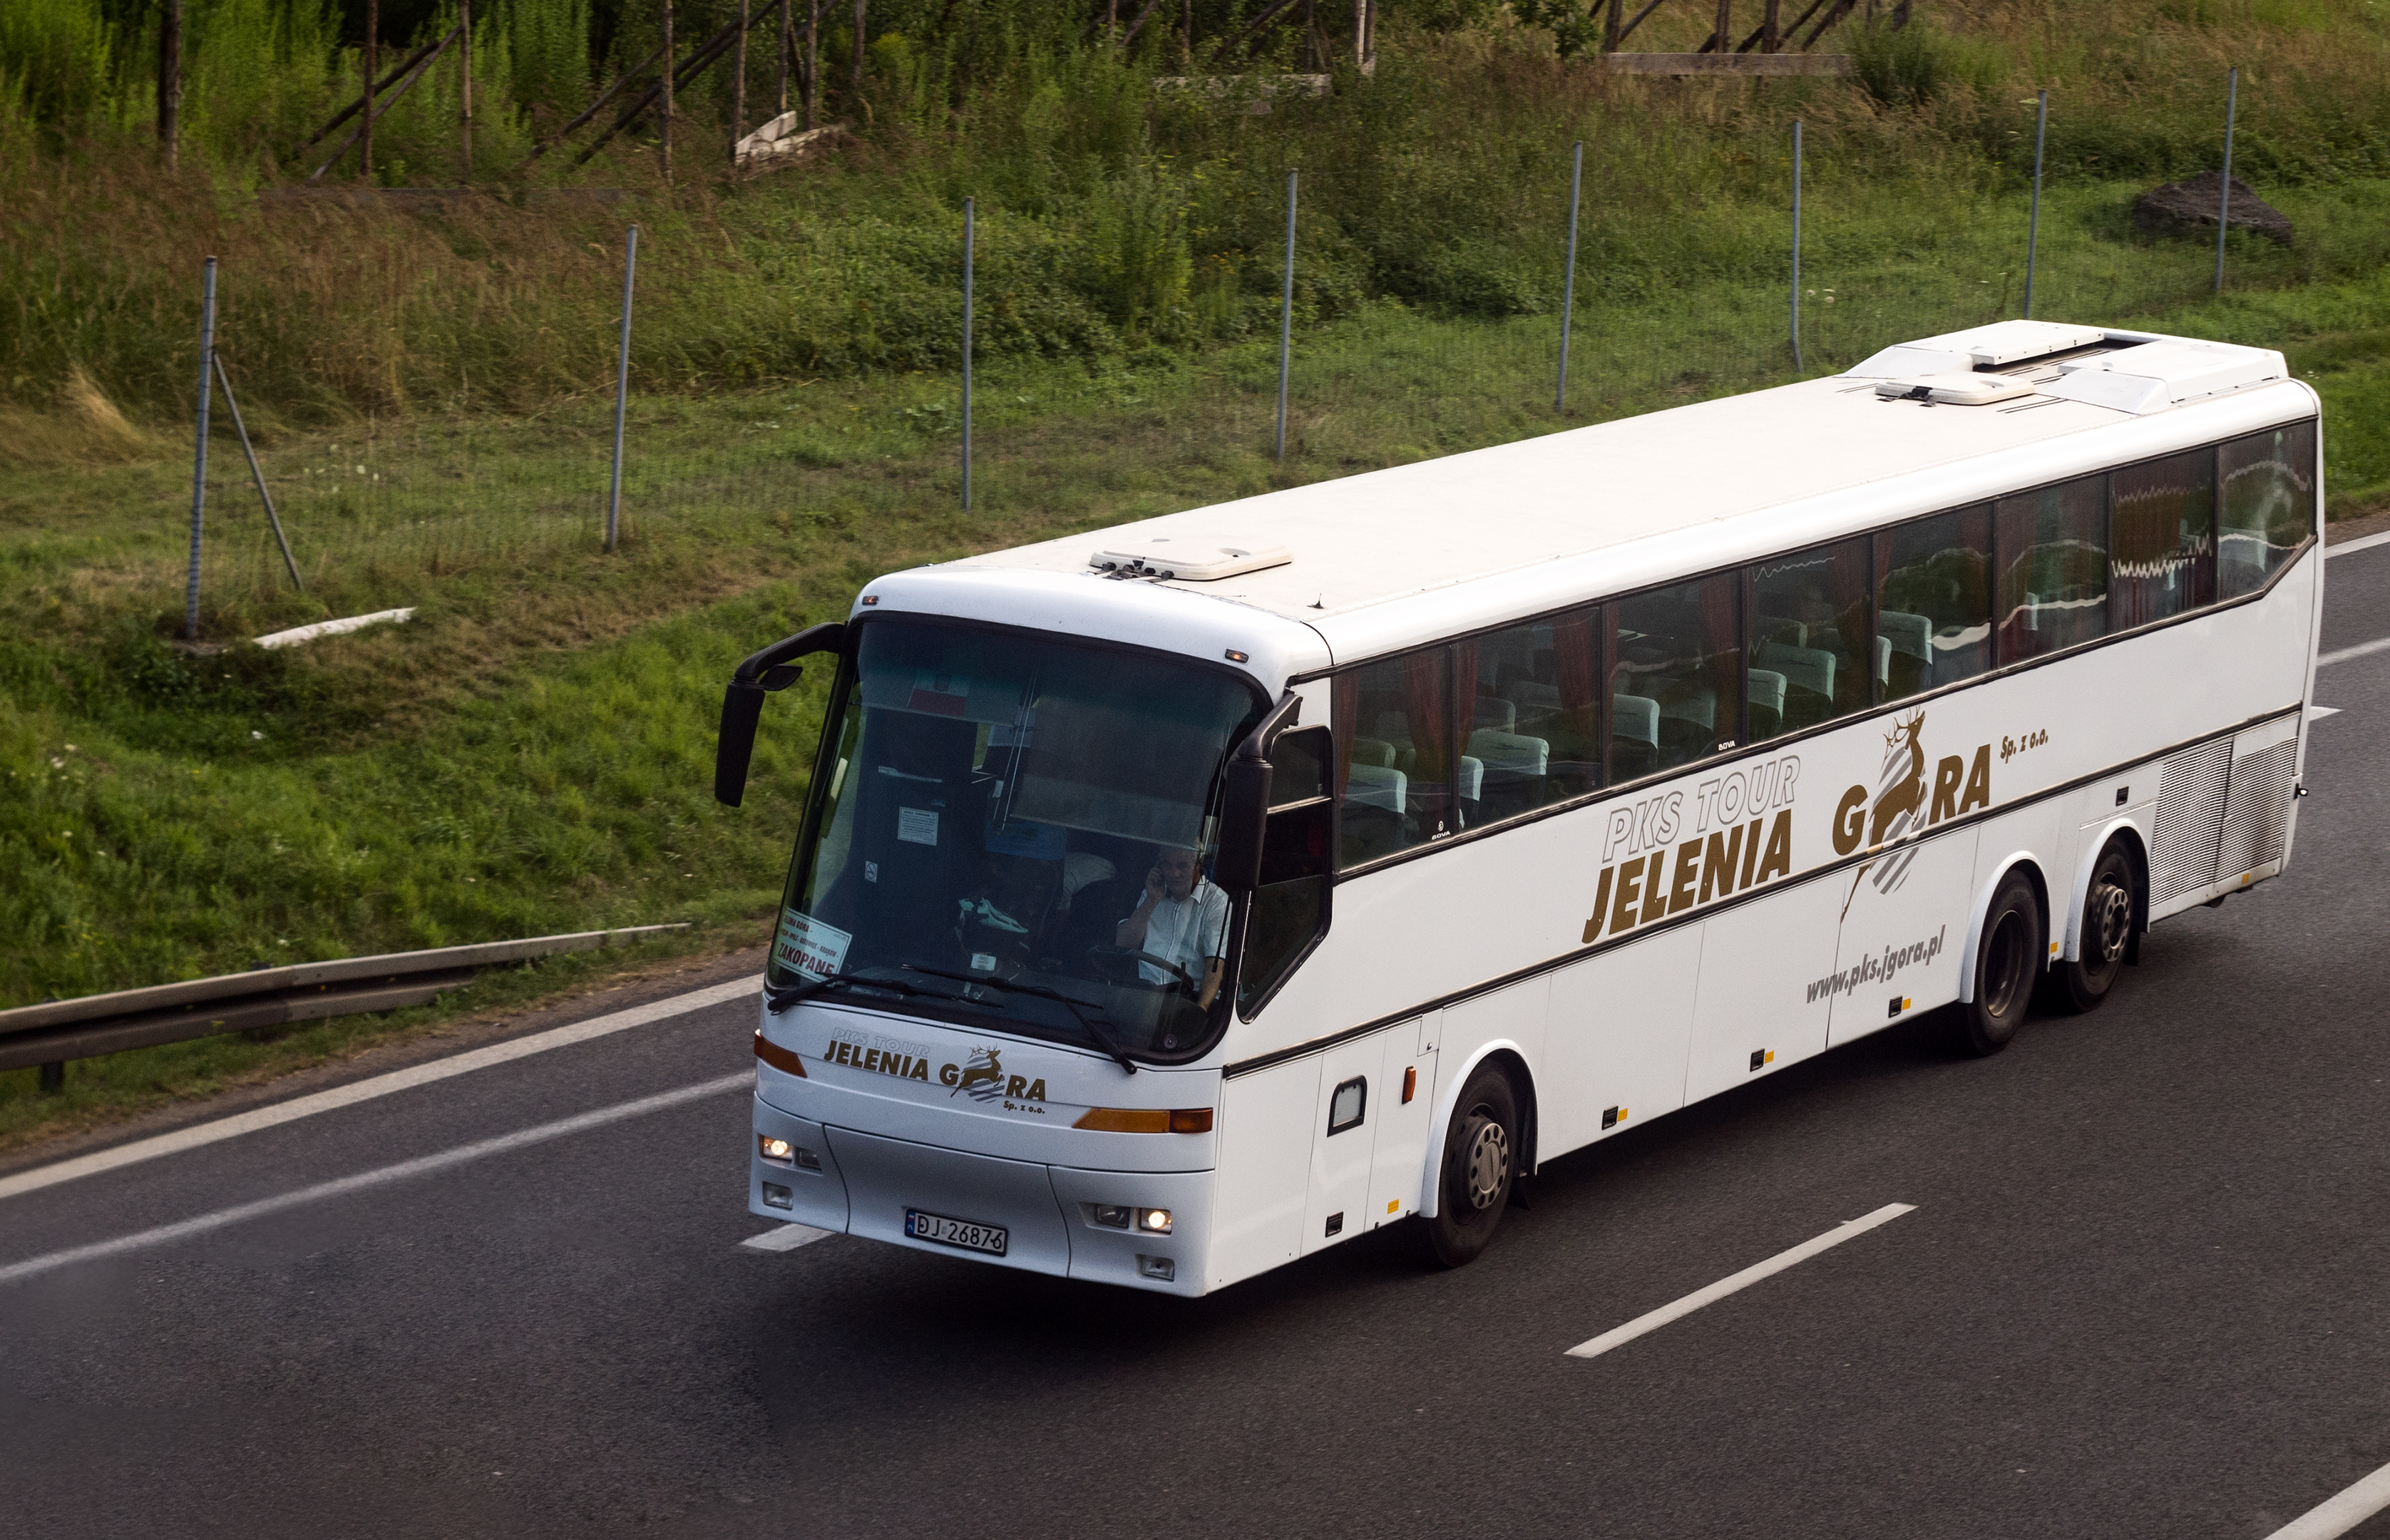 Bova Futura coach, transport, public, coach, bus, HQ Photo